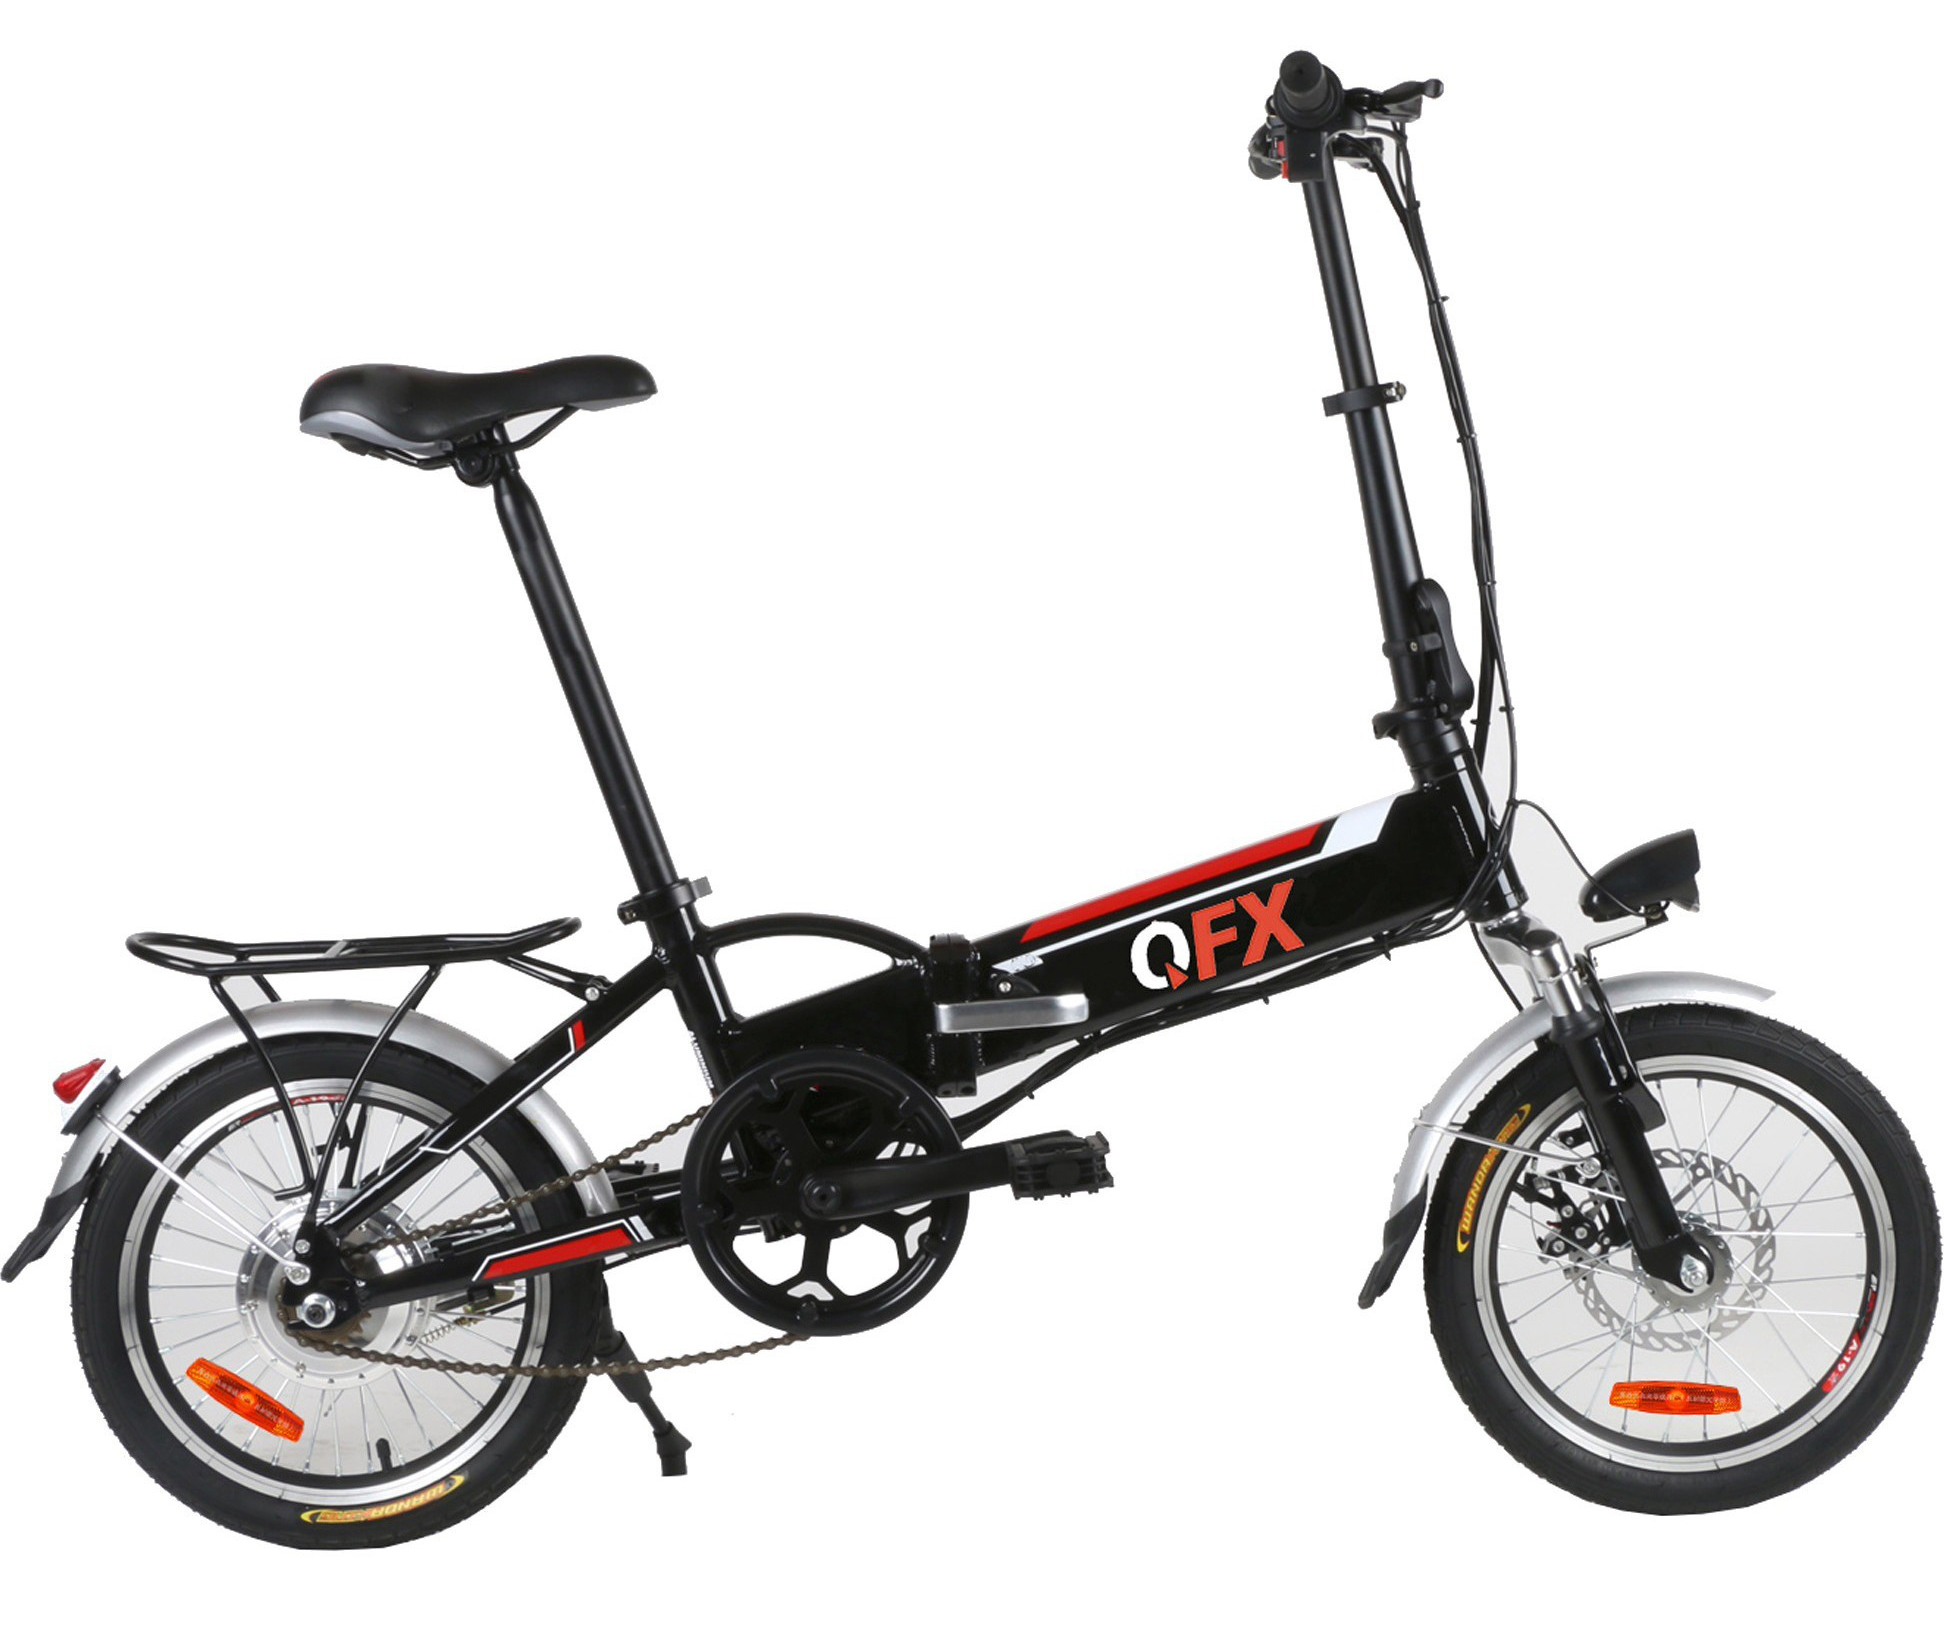 QFX BIK20BLACK BLACK  UNFOLD & GO 20IN 250 WATT ELECTRIC BIKE